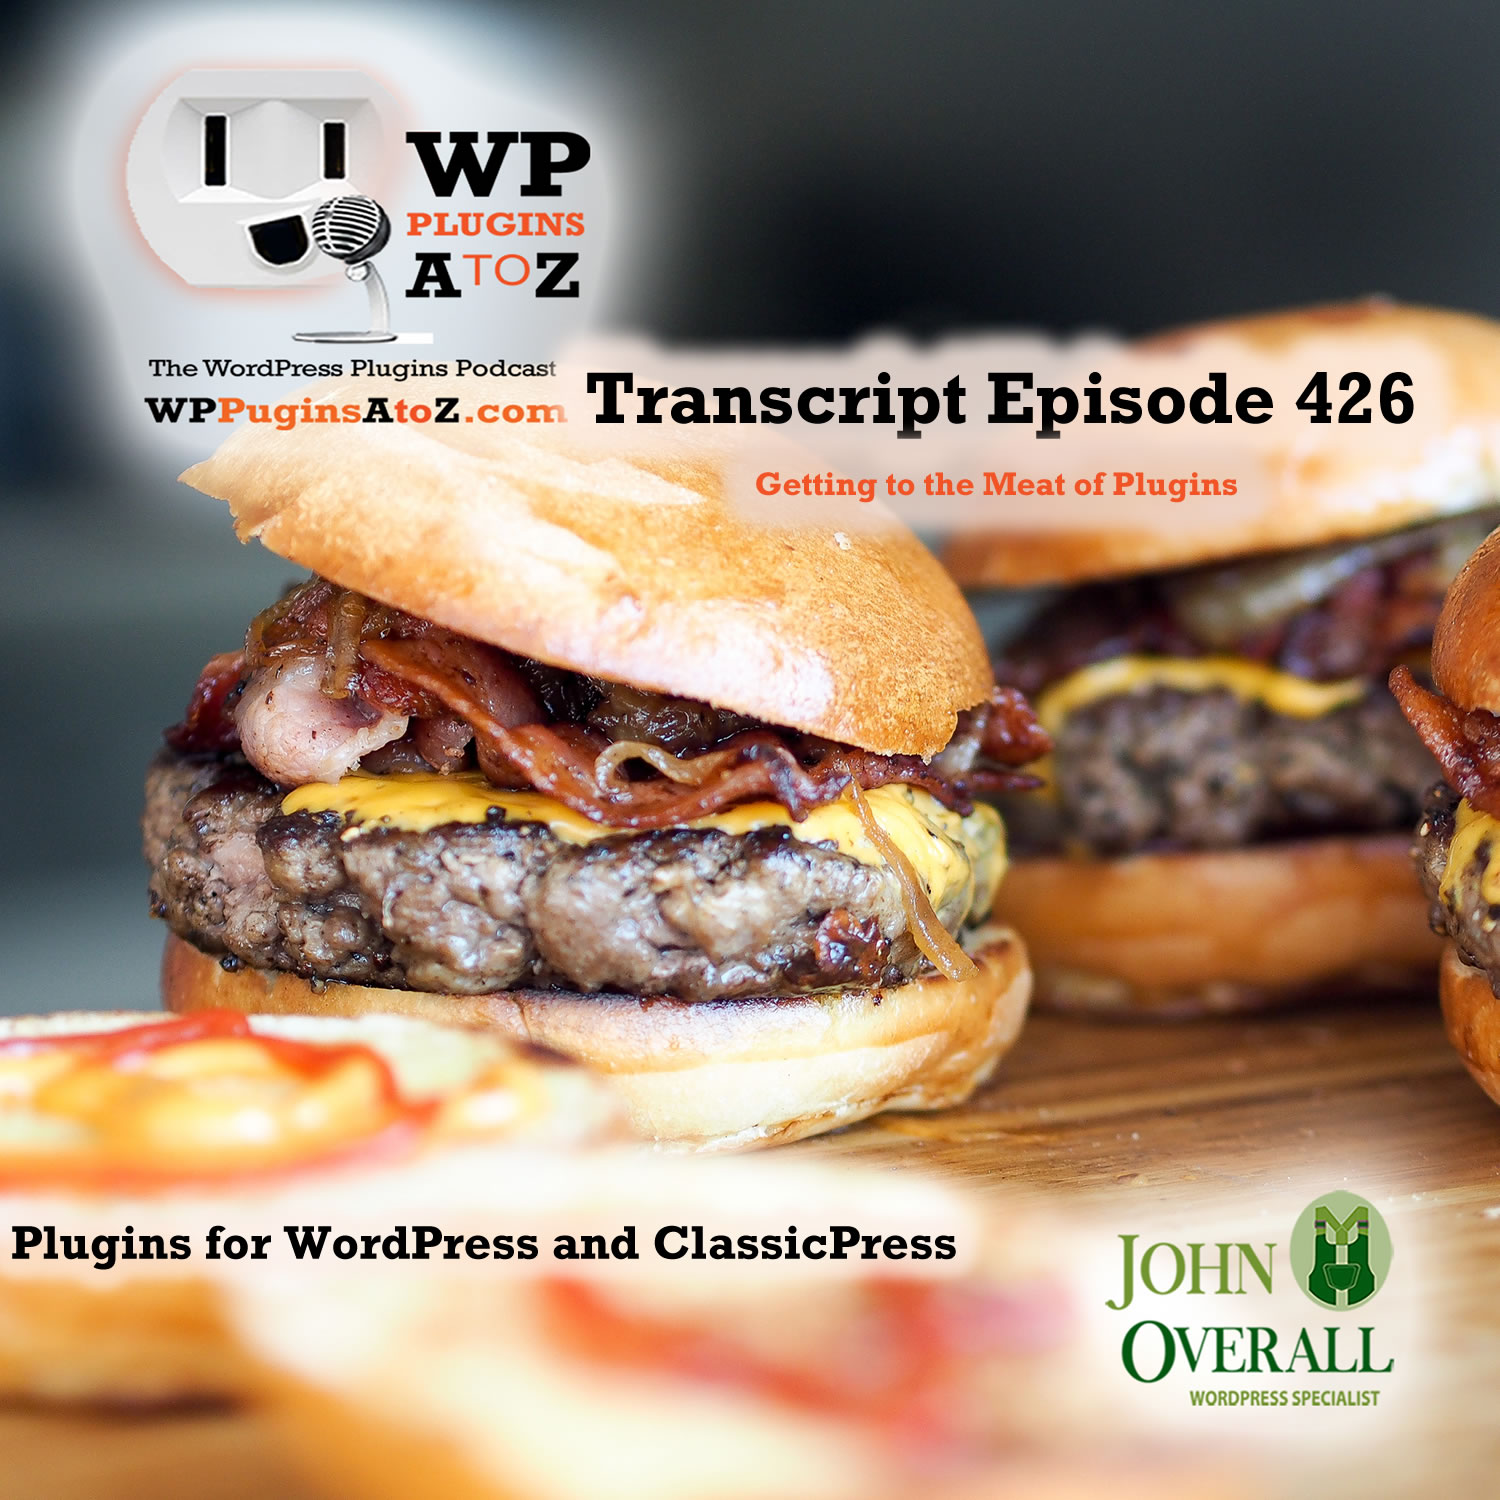 It's Episode 426 and I've got plugins for Logging in as a User, User Directories, Anti-Spam and ClassicPress Options, all coming up on WordPress Plugins A-Z!